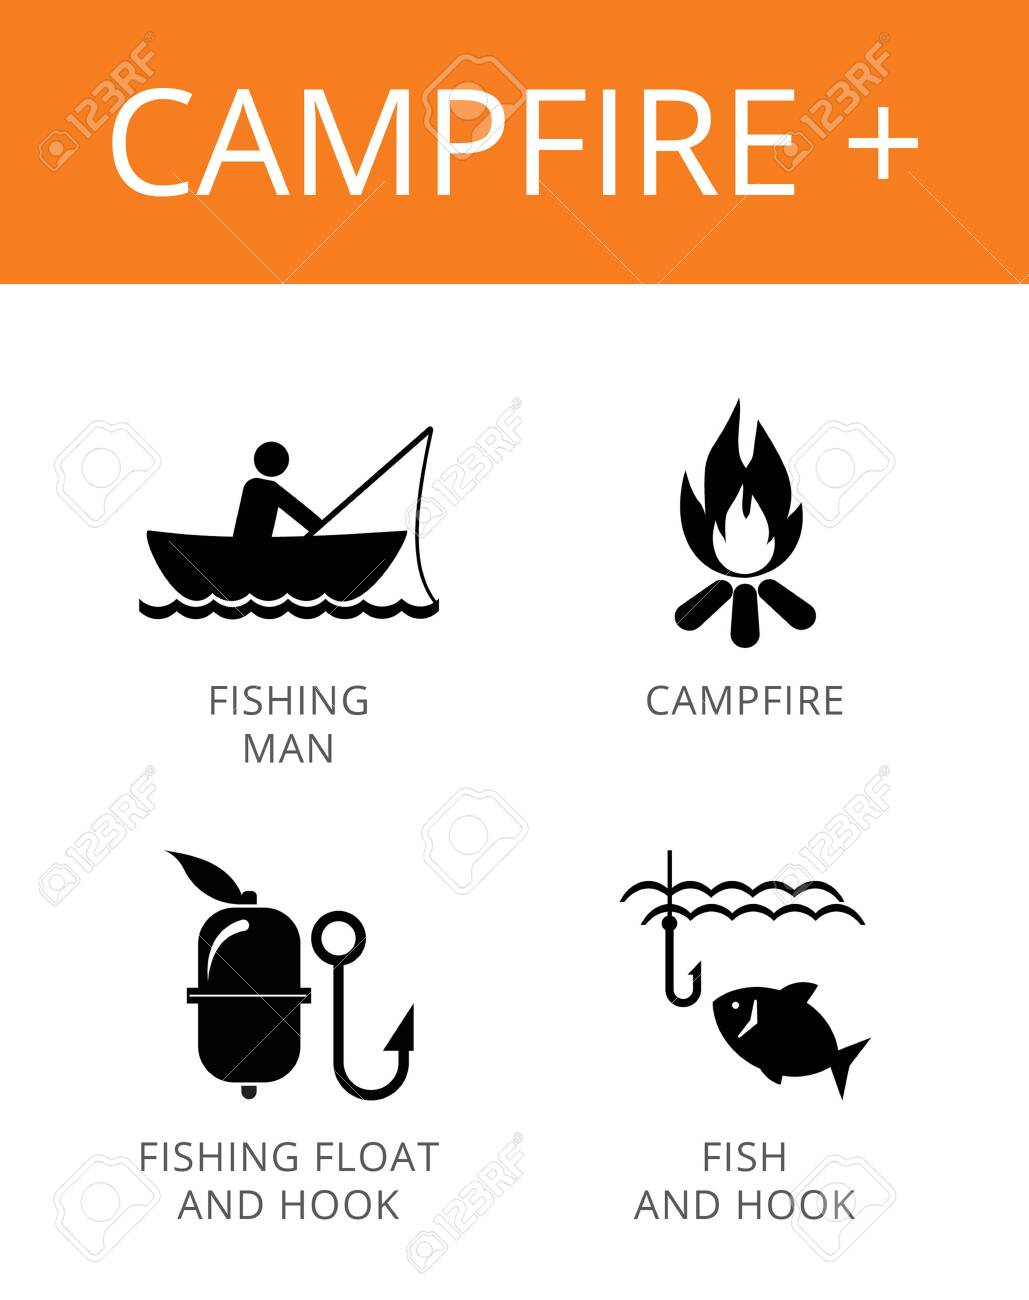 Campfire plus icons set. Simple illustrations of campfire, fisherman, fishing float and hook - 146670183